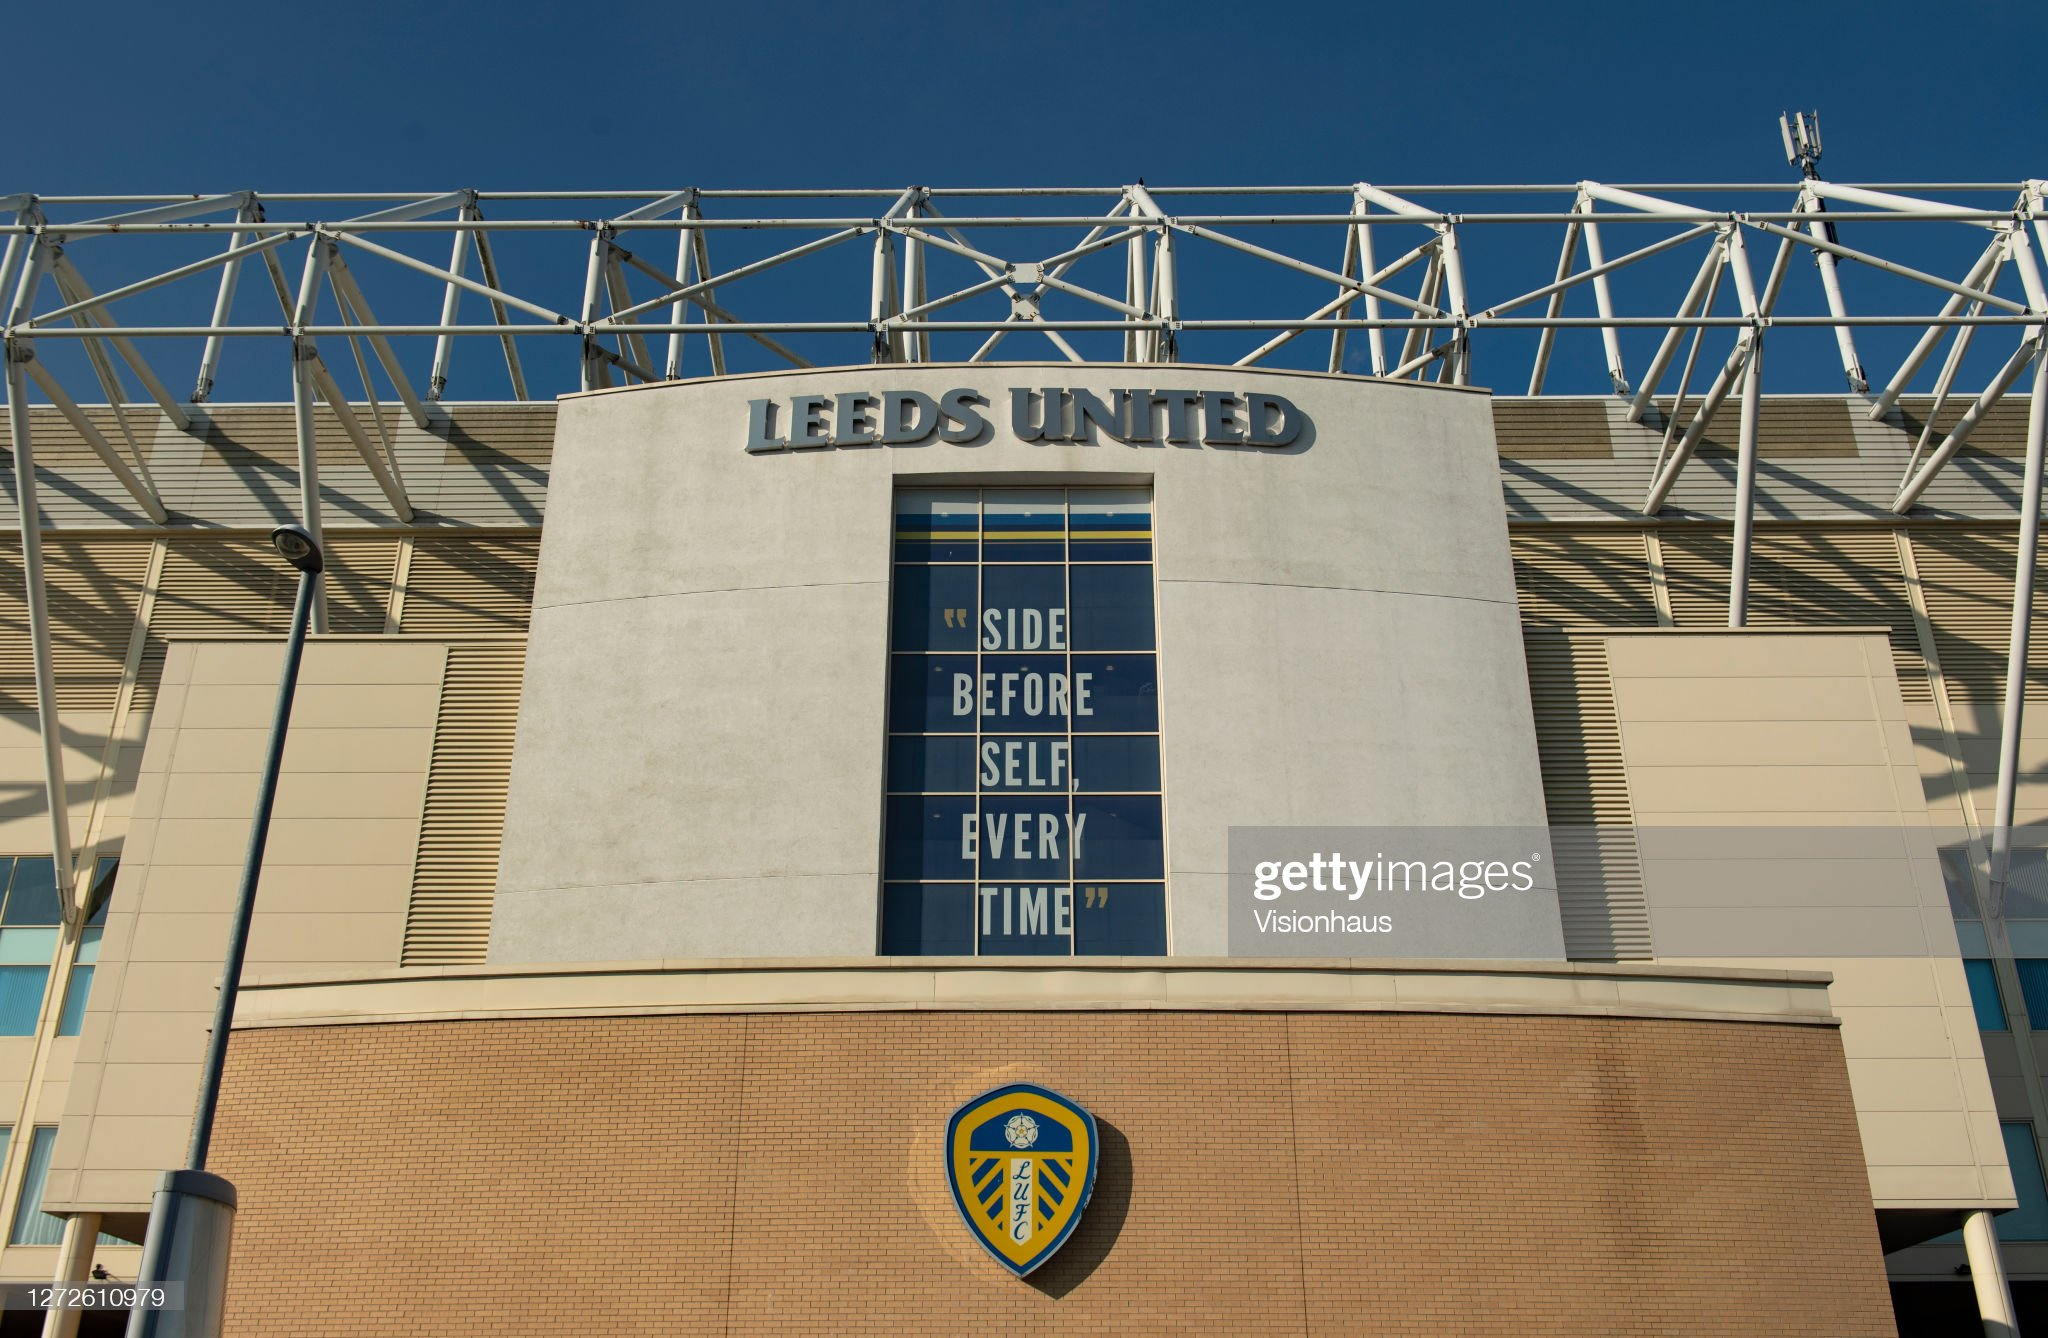 Leeds United vs Manchester City Preview, prediction and odds